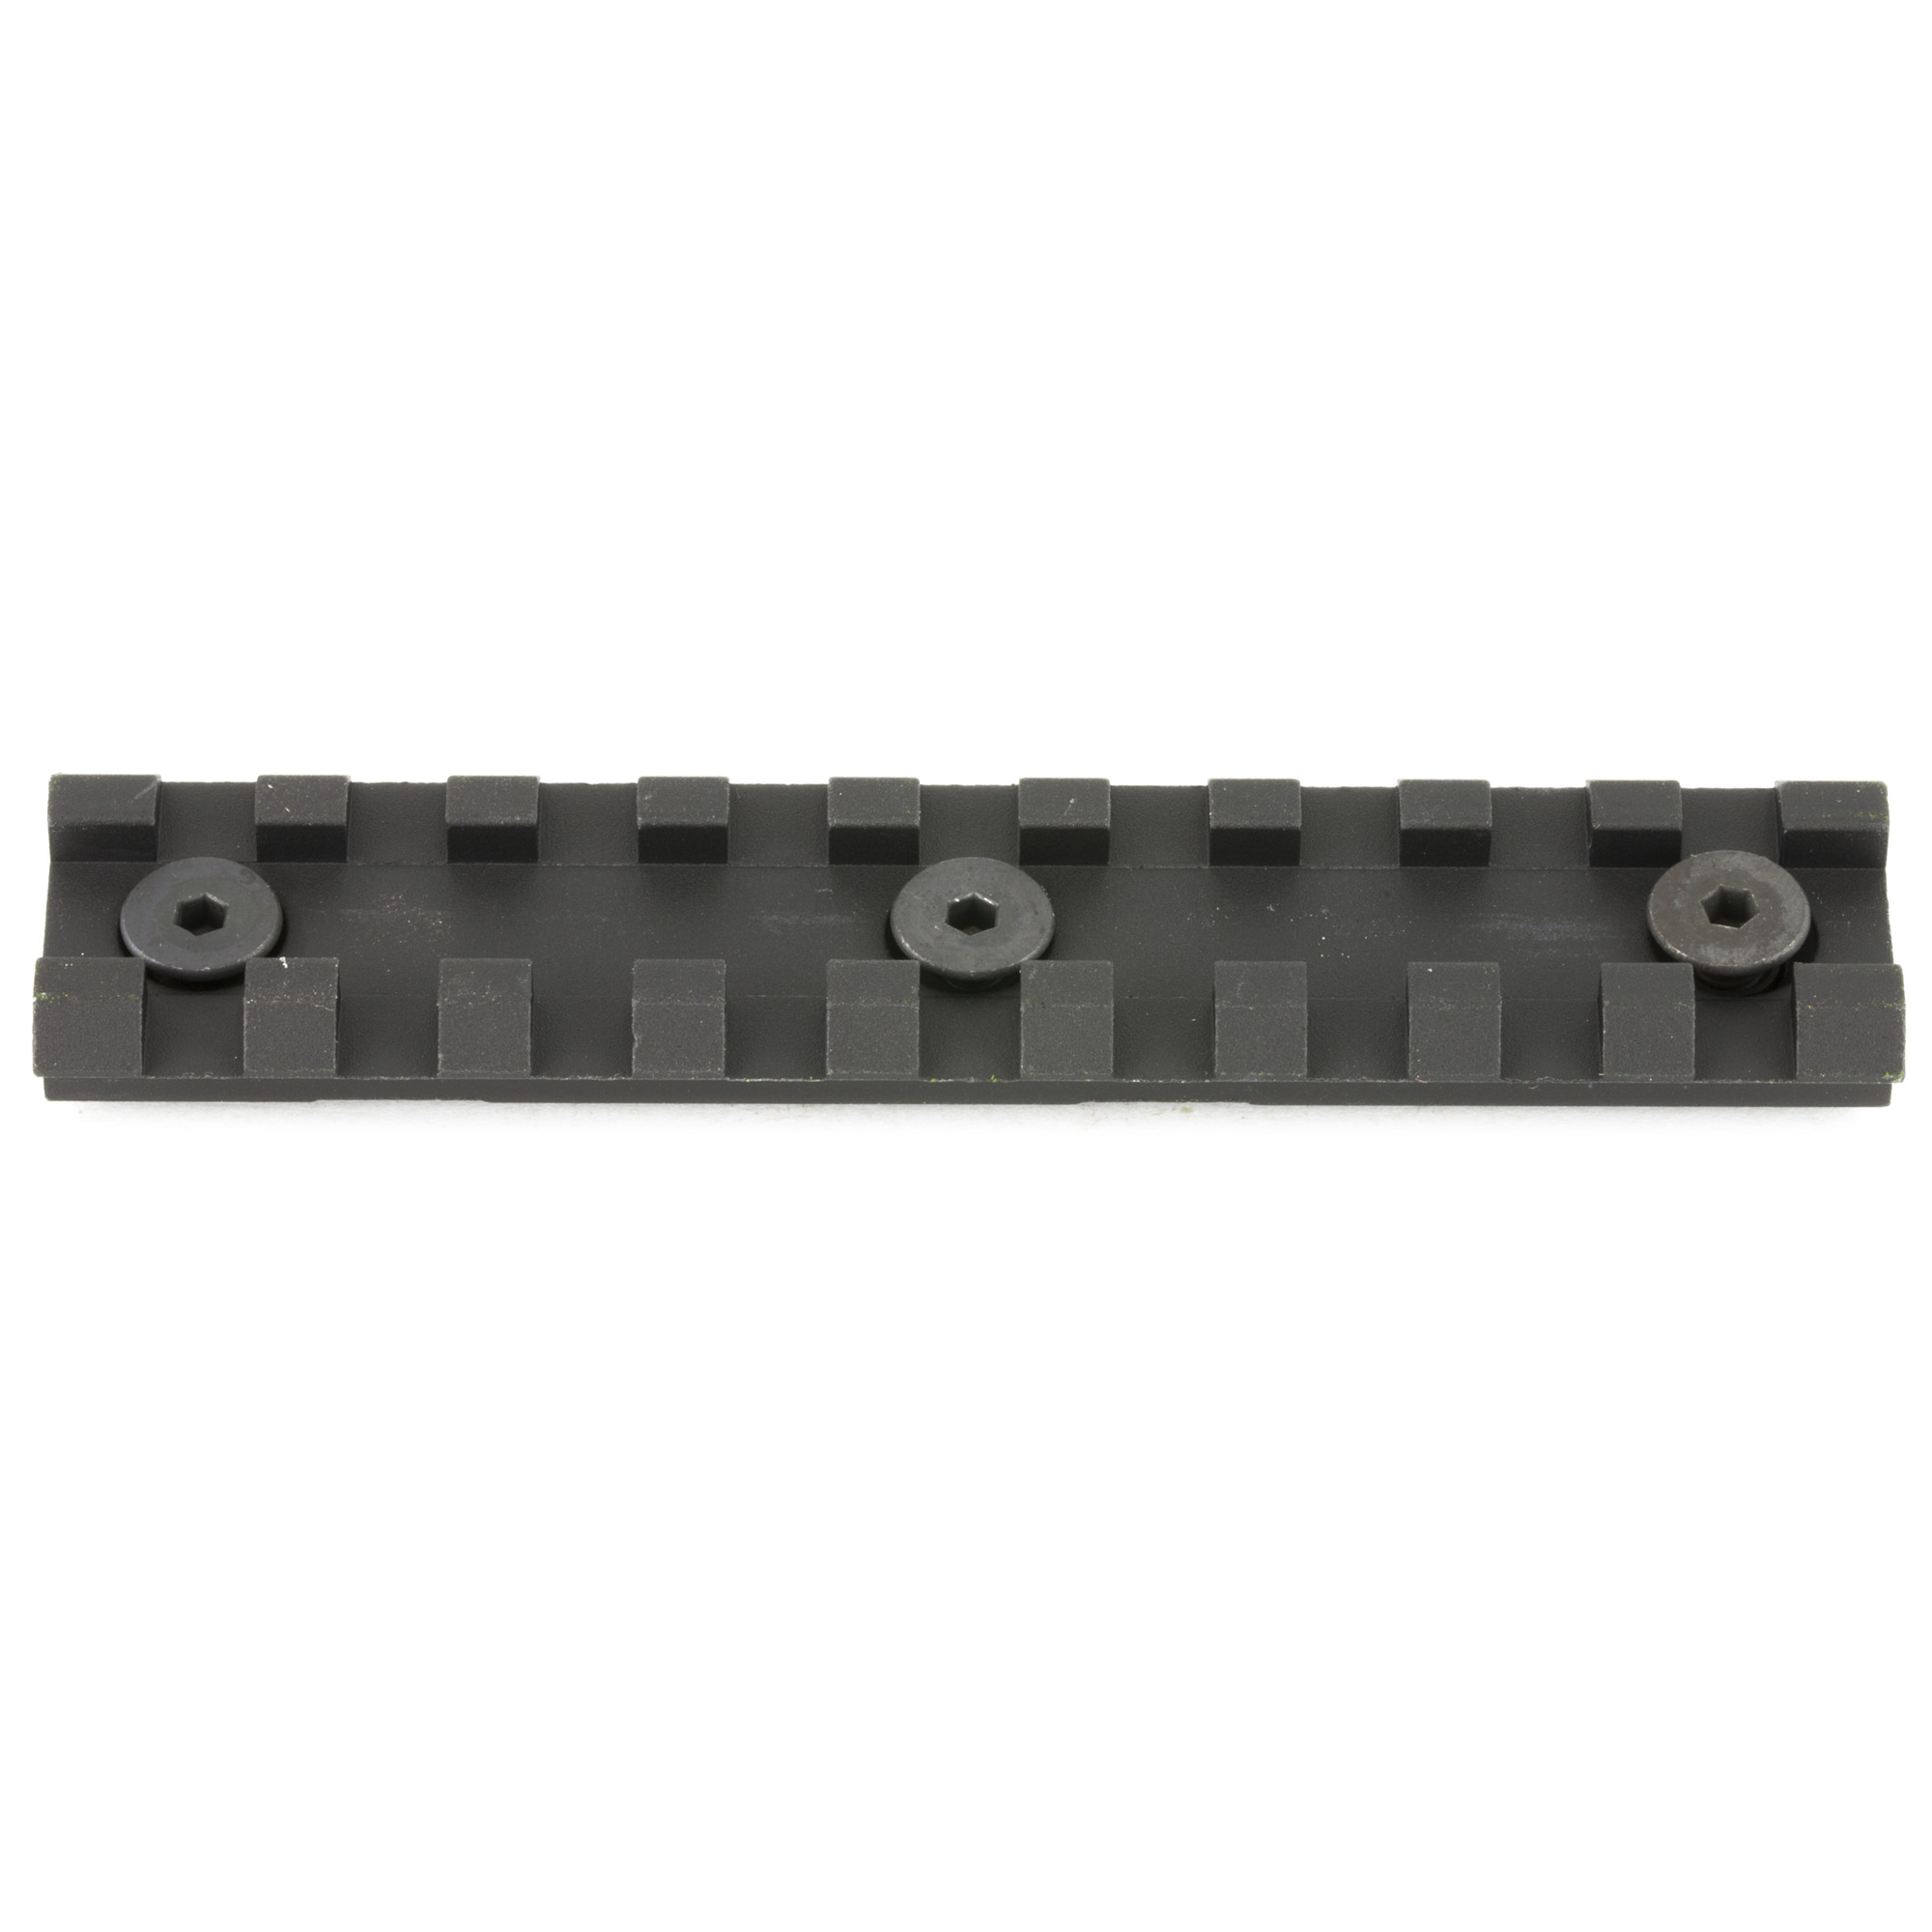 """The Samson 4"""" Picatinny Rail Kit will attach to any standard KeyMod hole. KeyMod Evolution series has slots at the 3"""" 6 and 9 o'clock positions. Includes 1-4"""" rail for Samson Evolution Rails."""